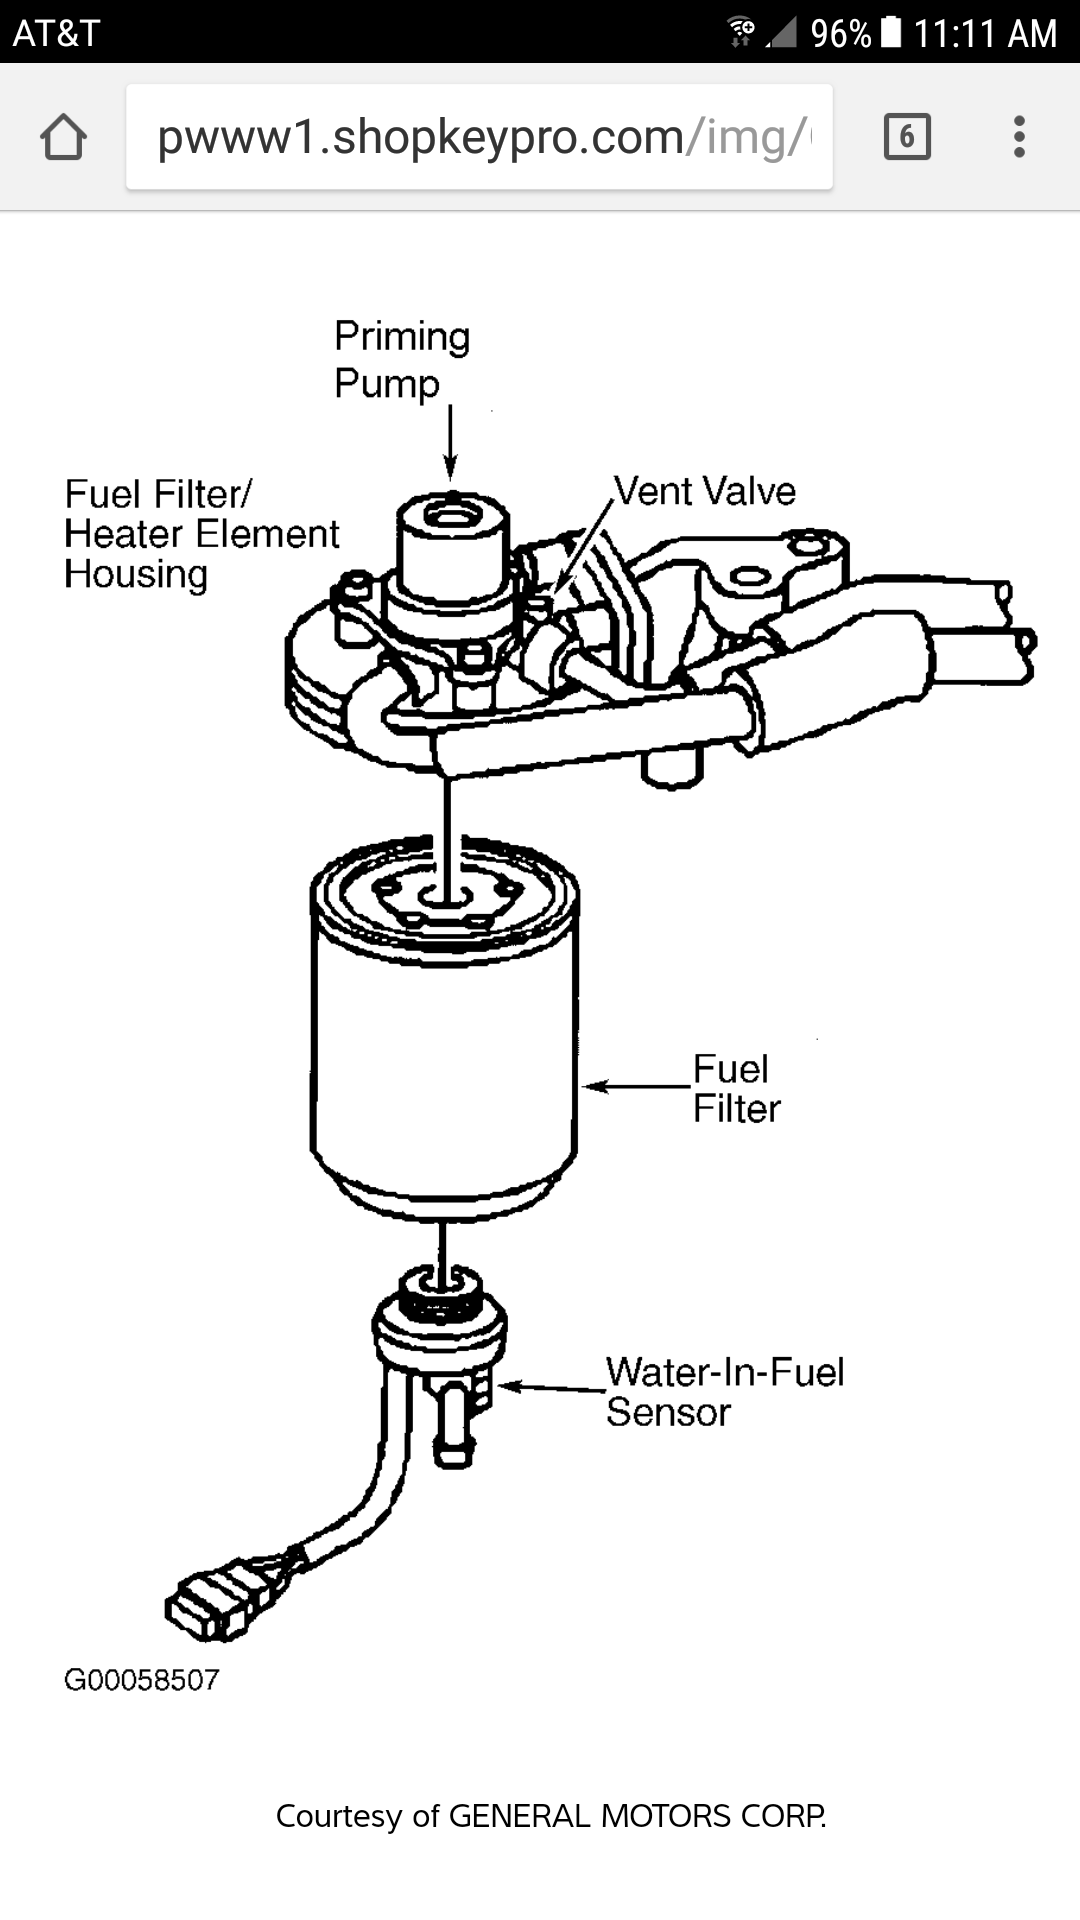 2003 Dodge Mins Fuel Filter Diagram - Data Wiring Diagram Update